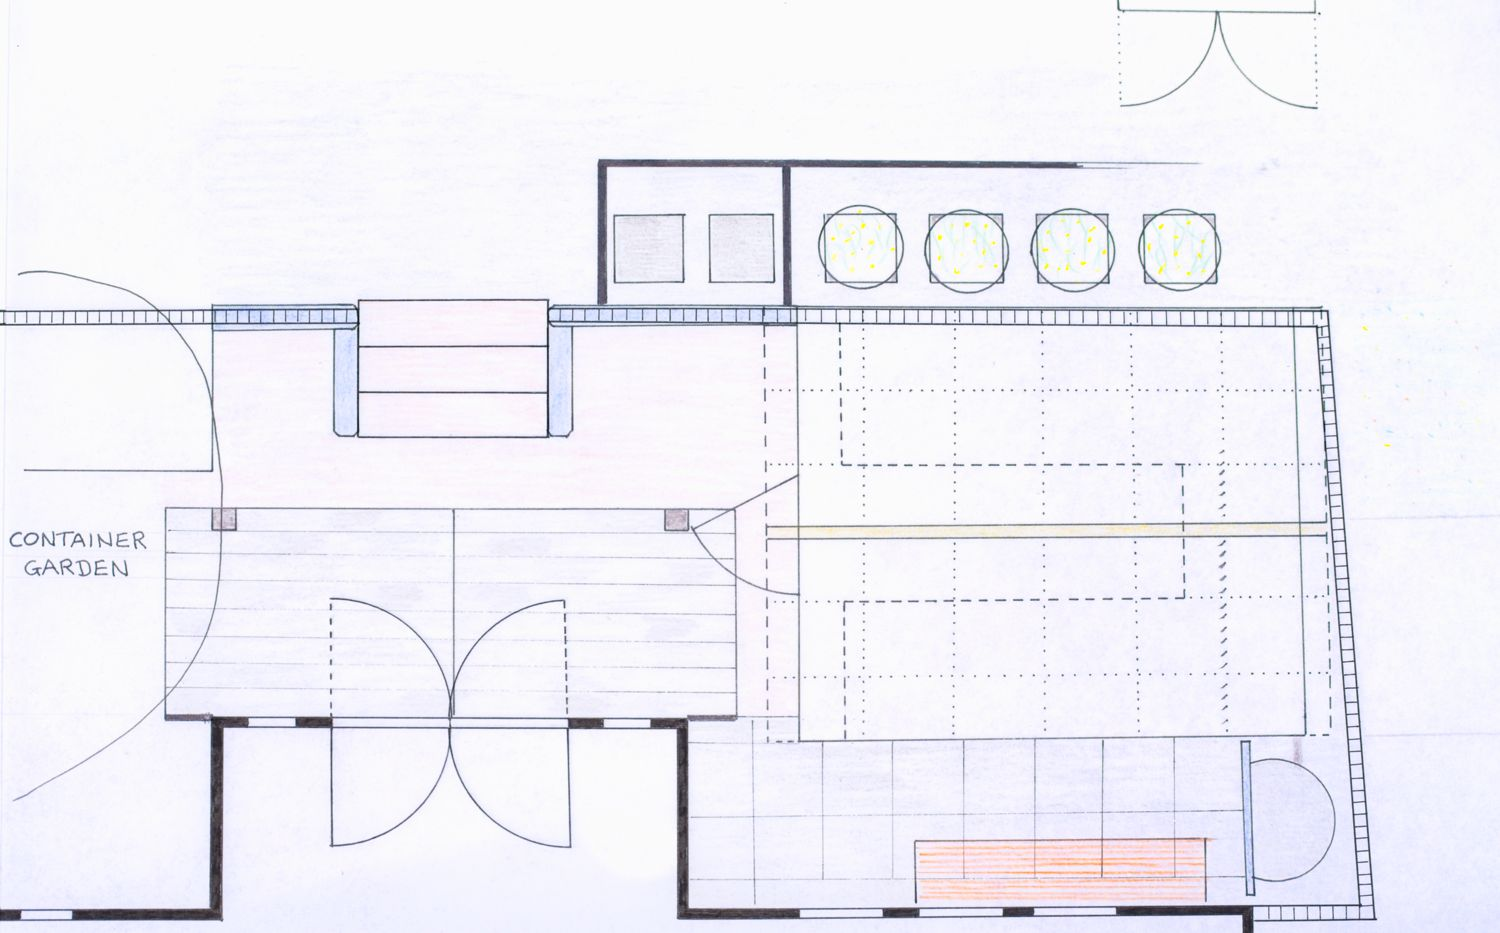 New plan for house frontage and greenhouse